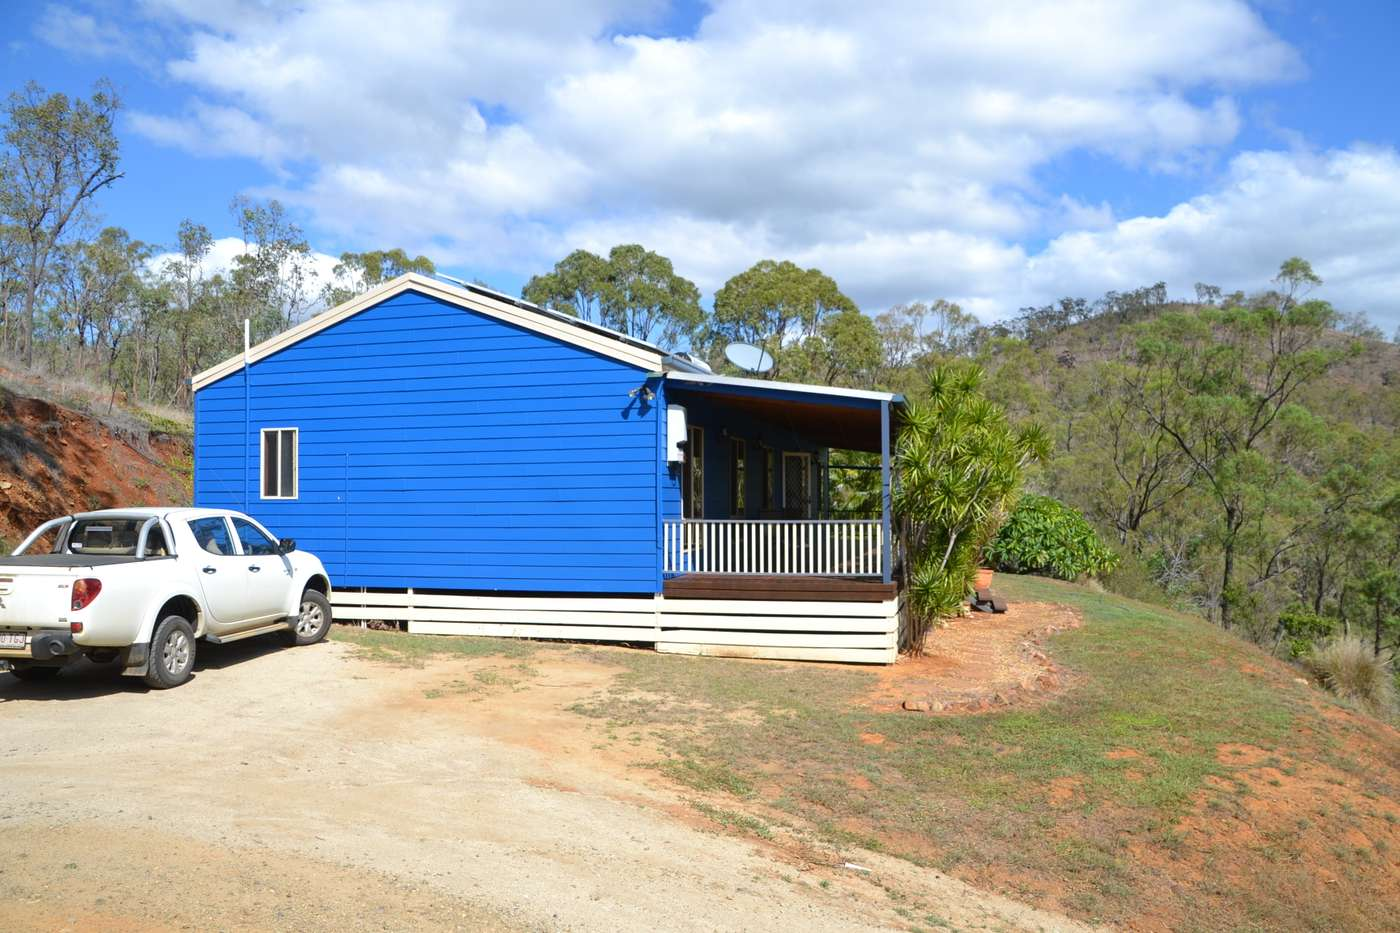 Main view of Homely rural listing, 71 Preston Rd, Bouldercombe, QLD 4702